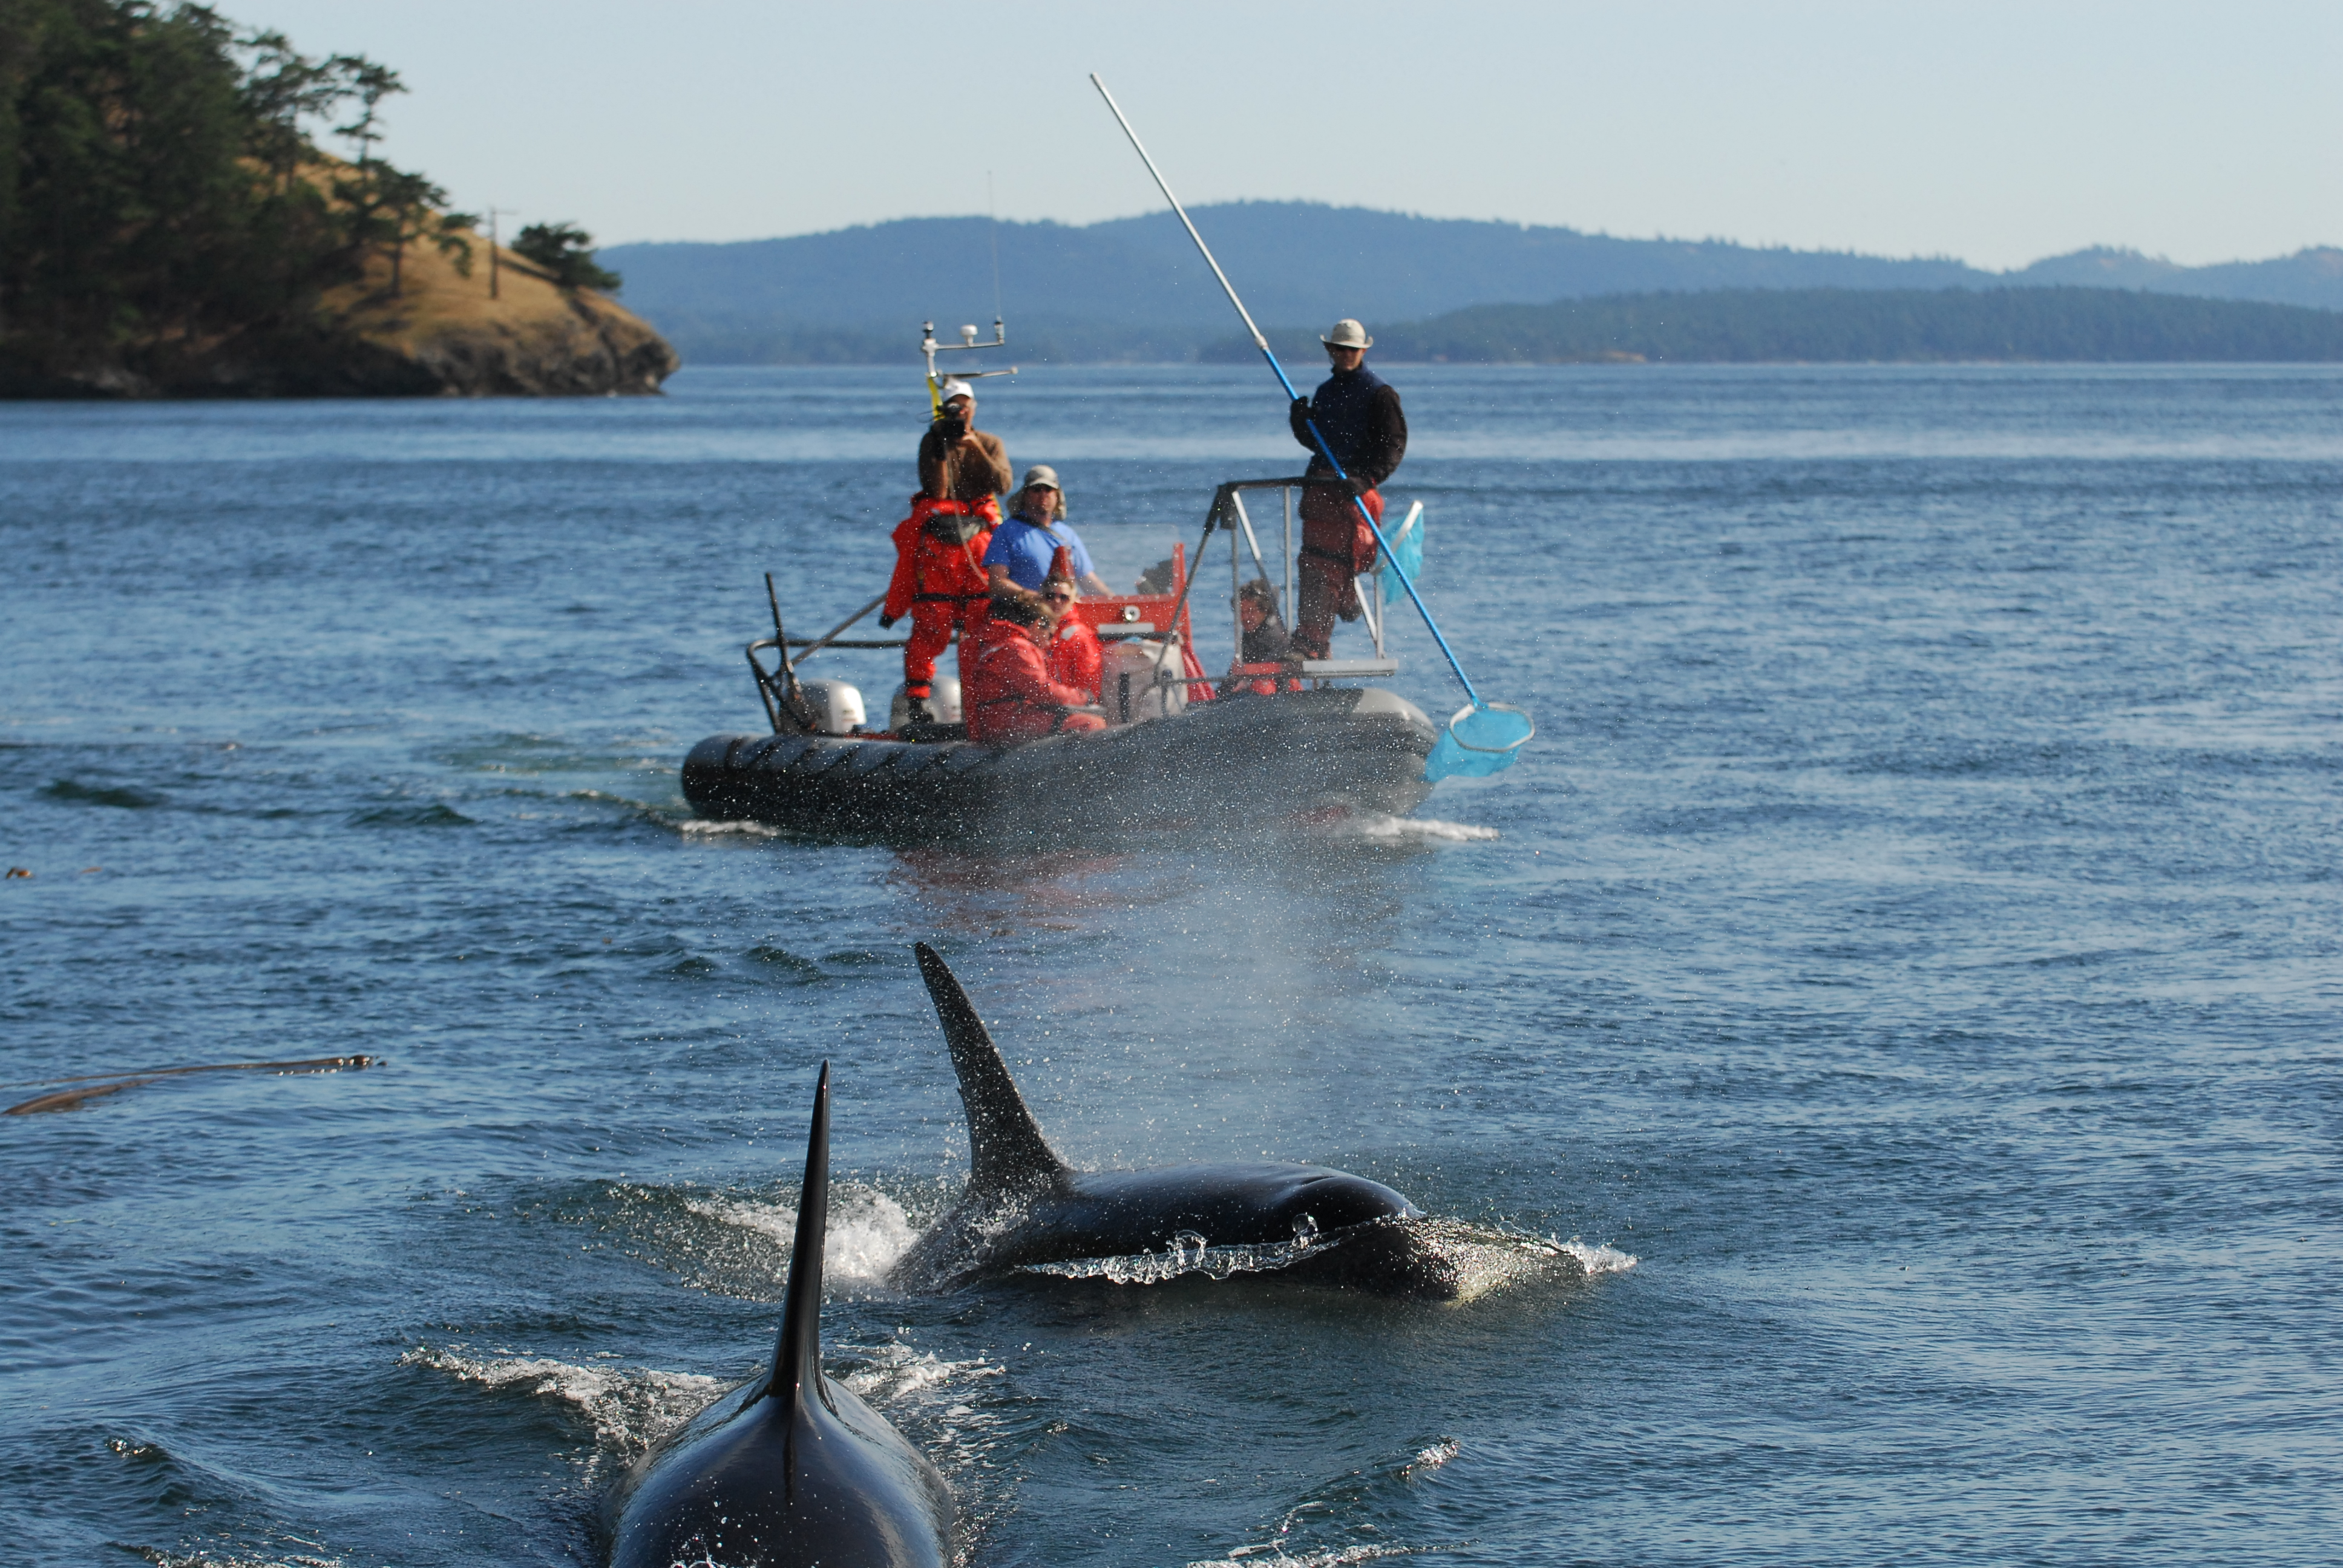 NOAA research boat in action, photo courtesy of Center for Whale Research